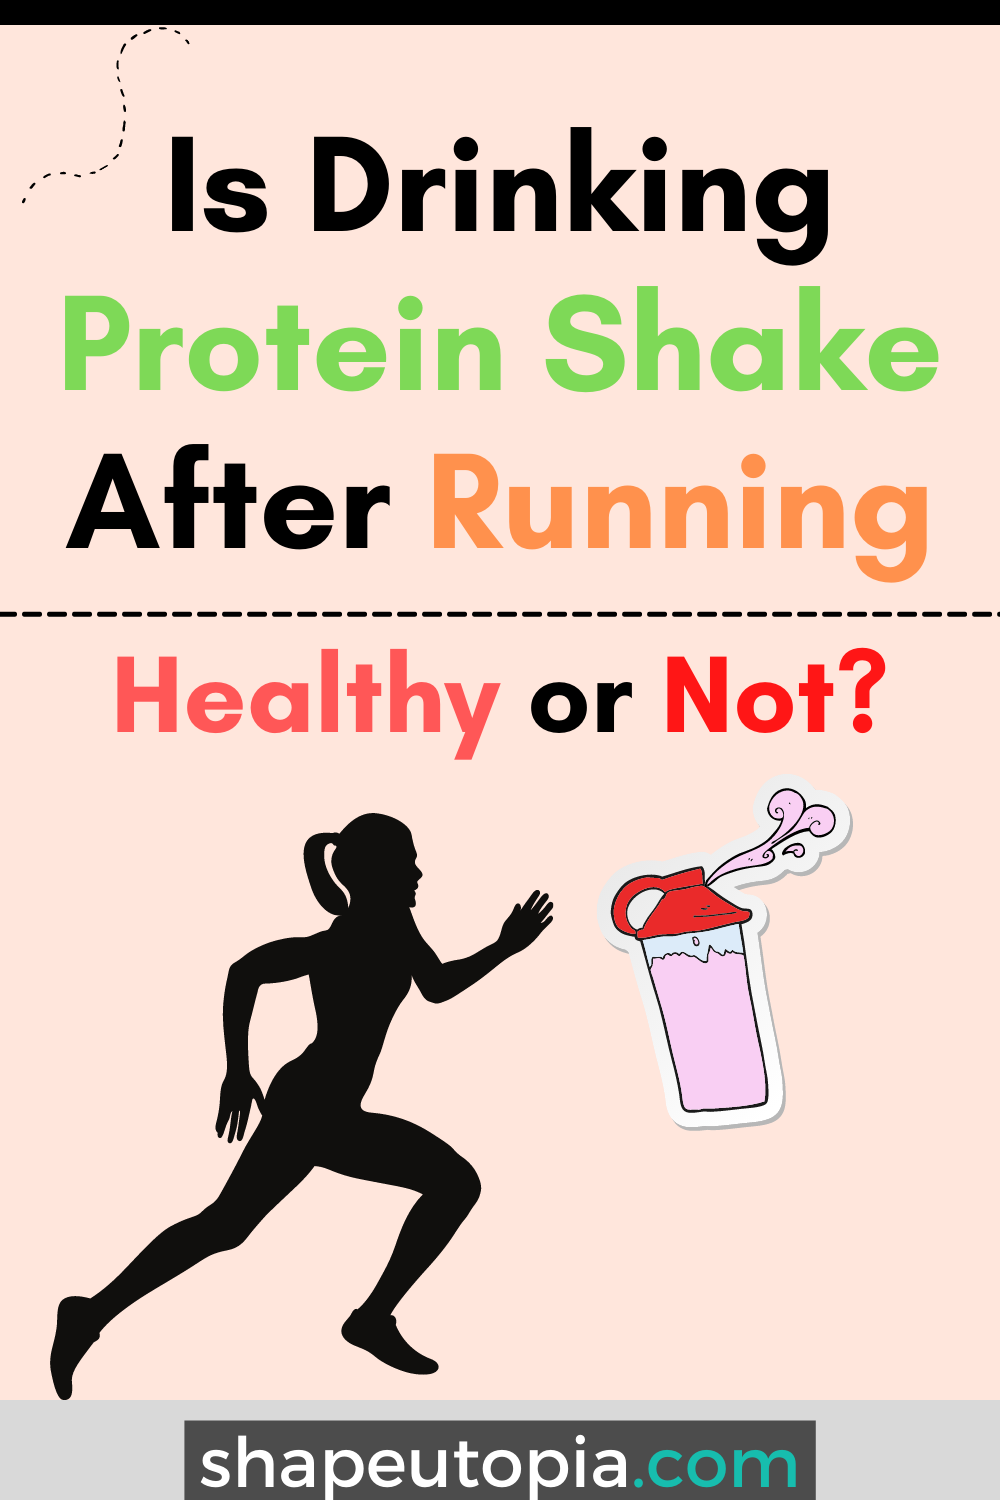 Drinking Protein Shake After Running is It Healthy or Not